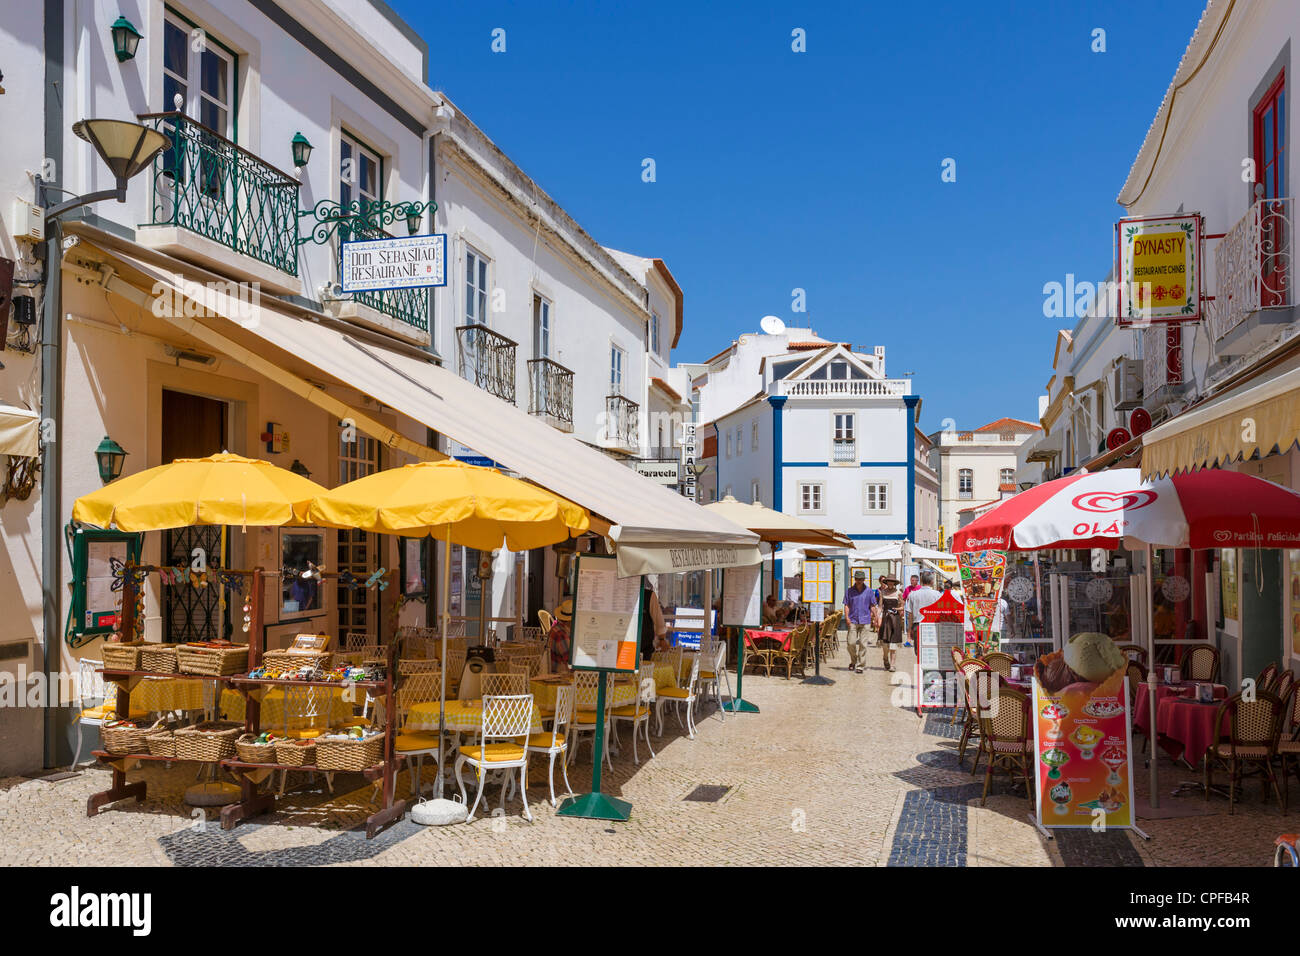 Restaurants and shops on rua de abril in the old town